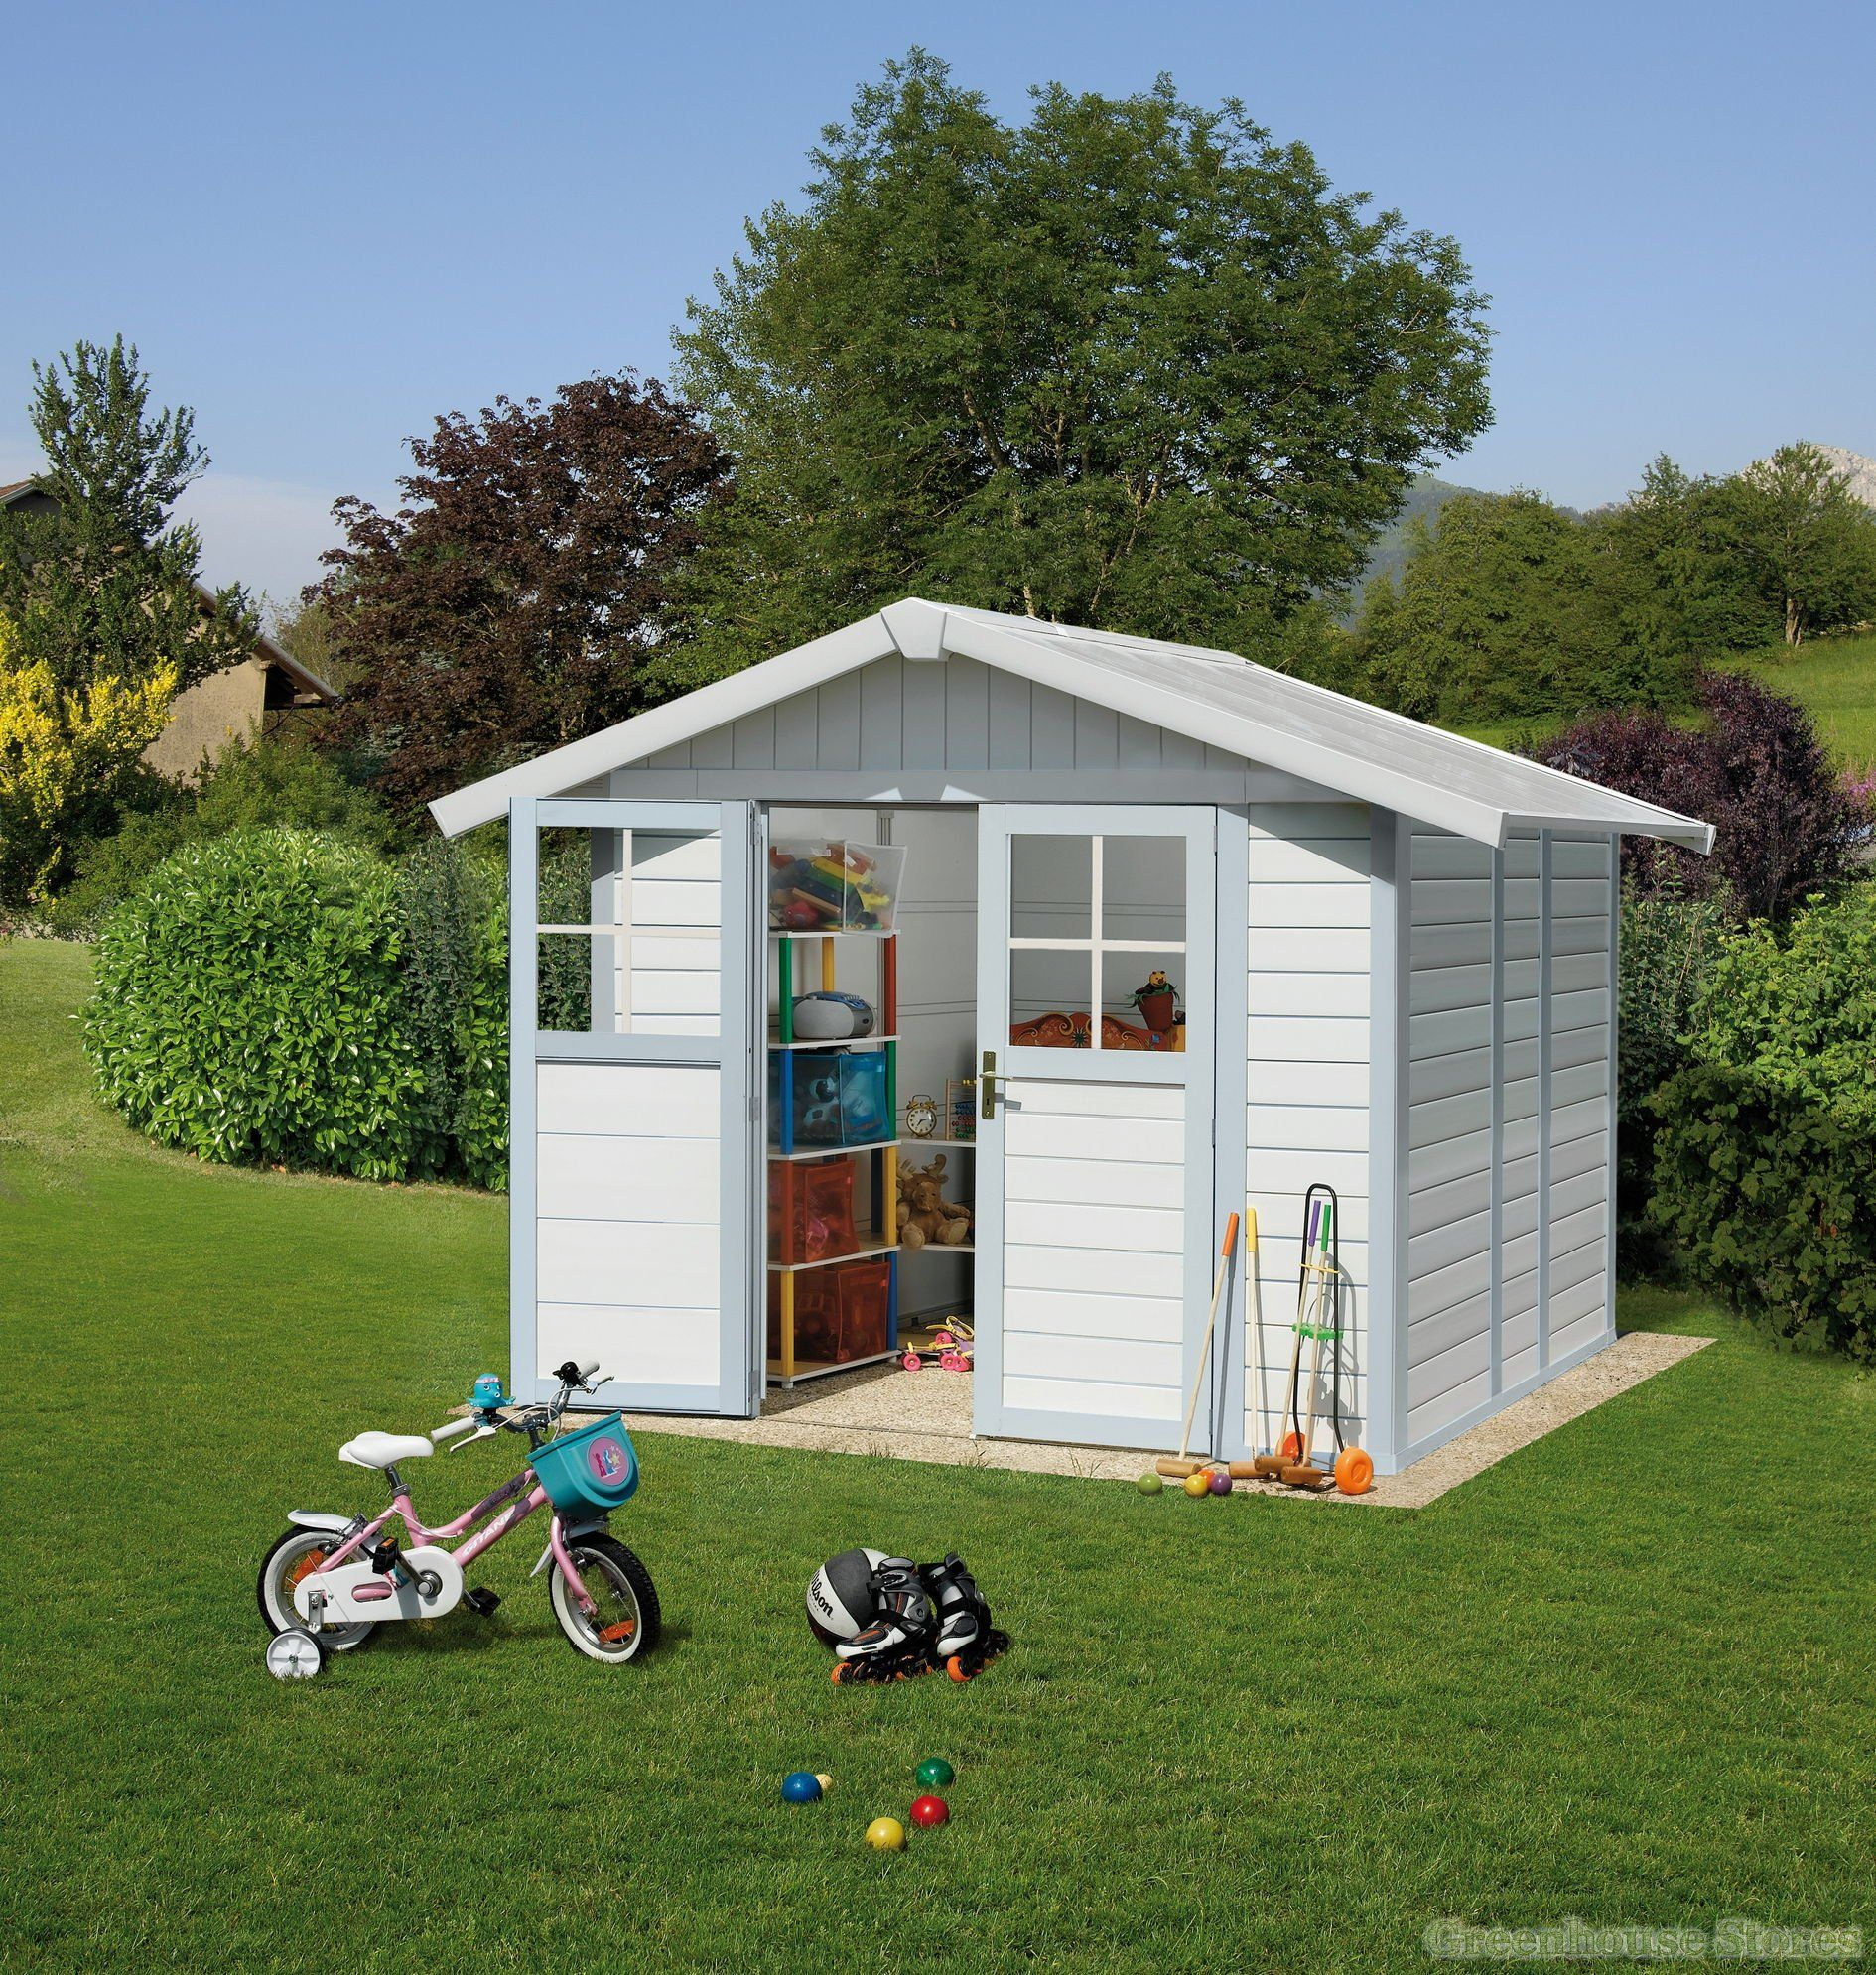 Grosfillex Deco 8x6 PVC Plastic Shed In White & Blue in